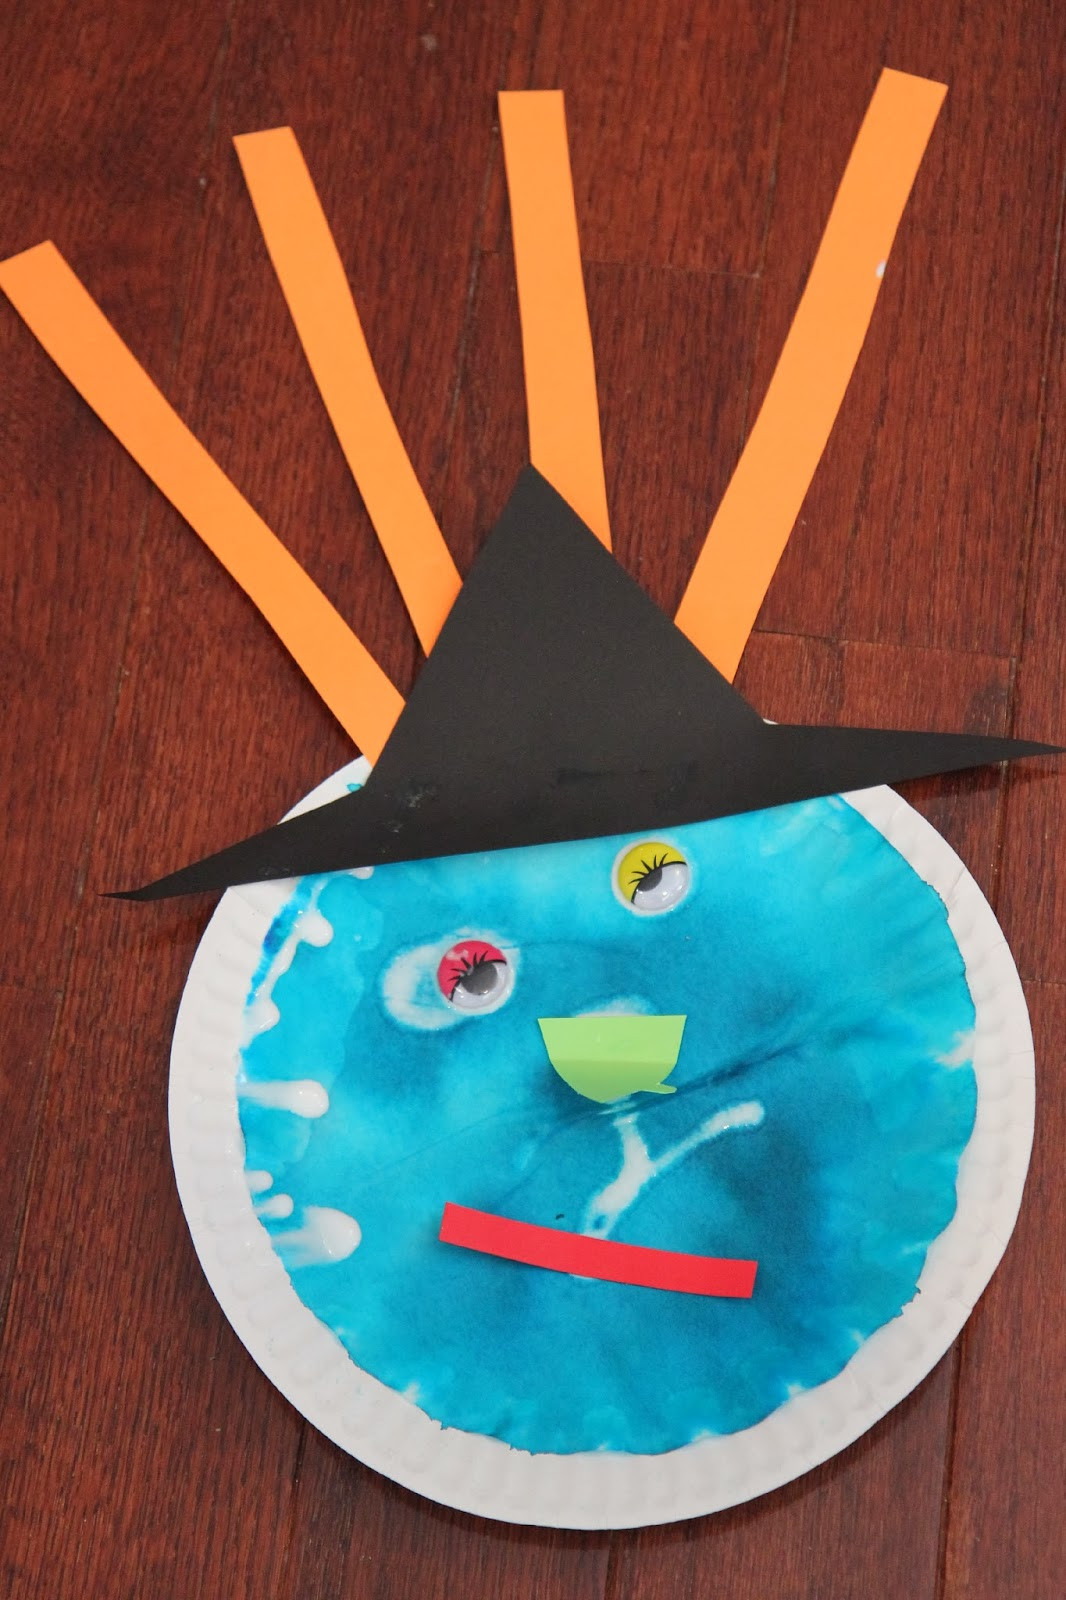 Best ideas about Crafts For Preschool Kids . Save or Pin Toddler Approved Witch Themed Preschool Crafts Now.